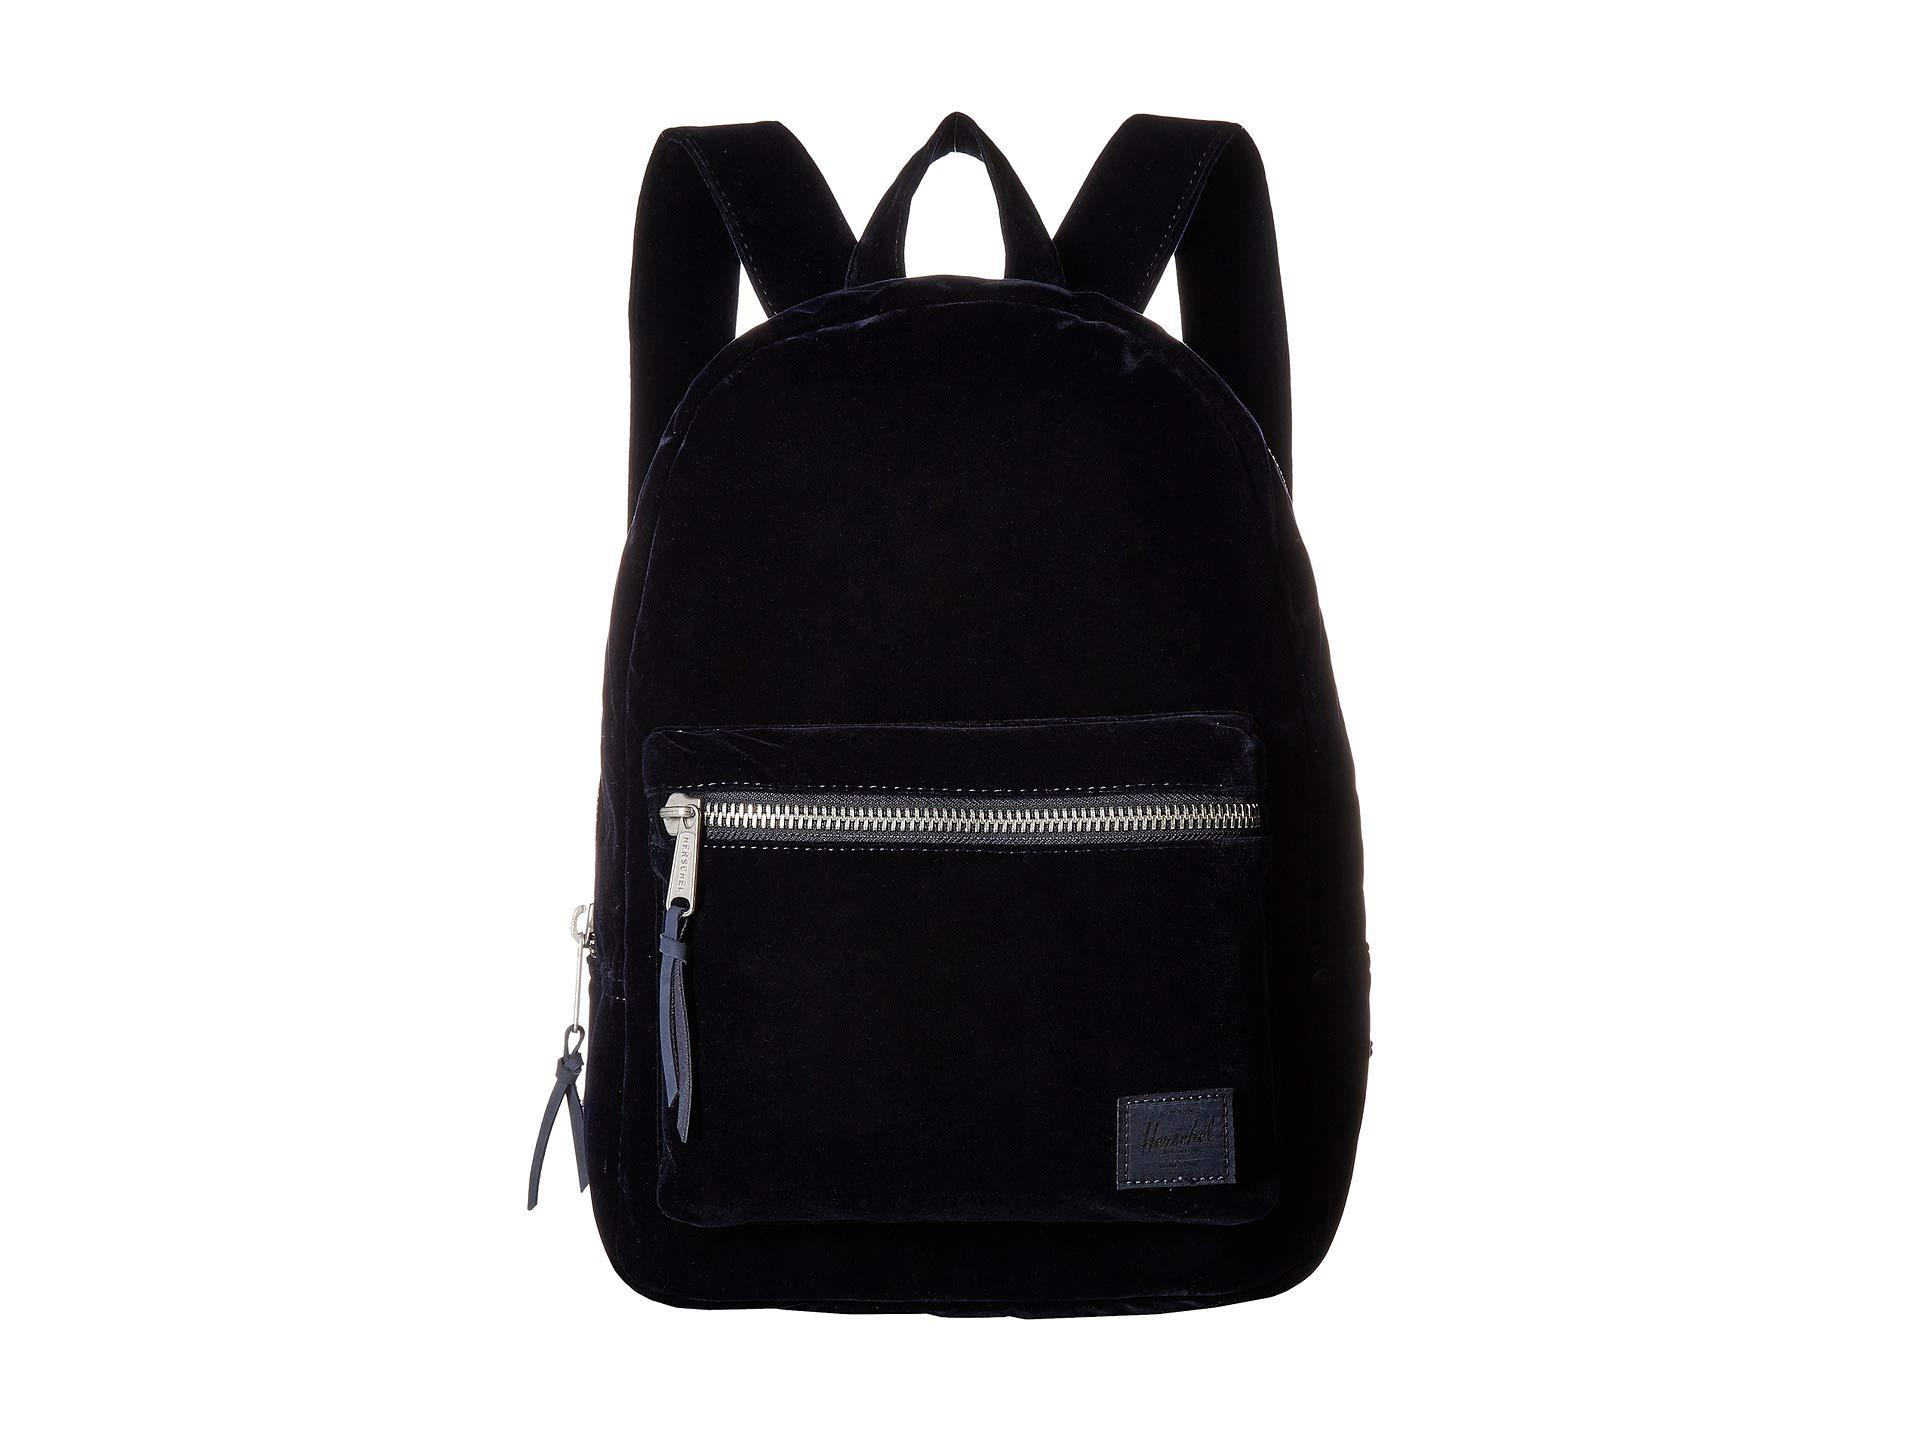 0e4a8d94d05be1 Lyst - Herschel Supply Co. Grove X-small in Black